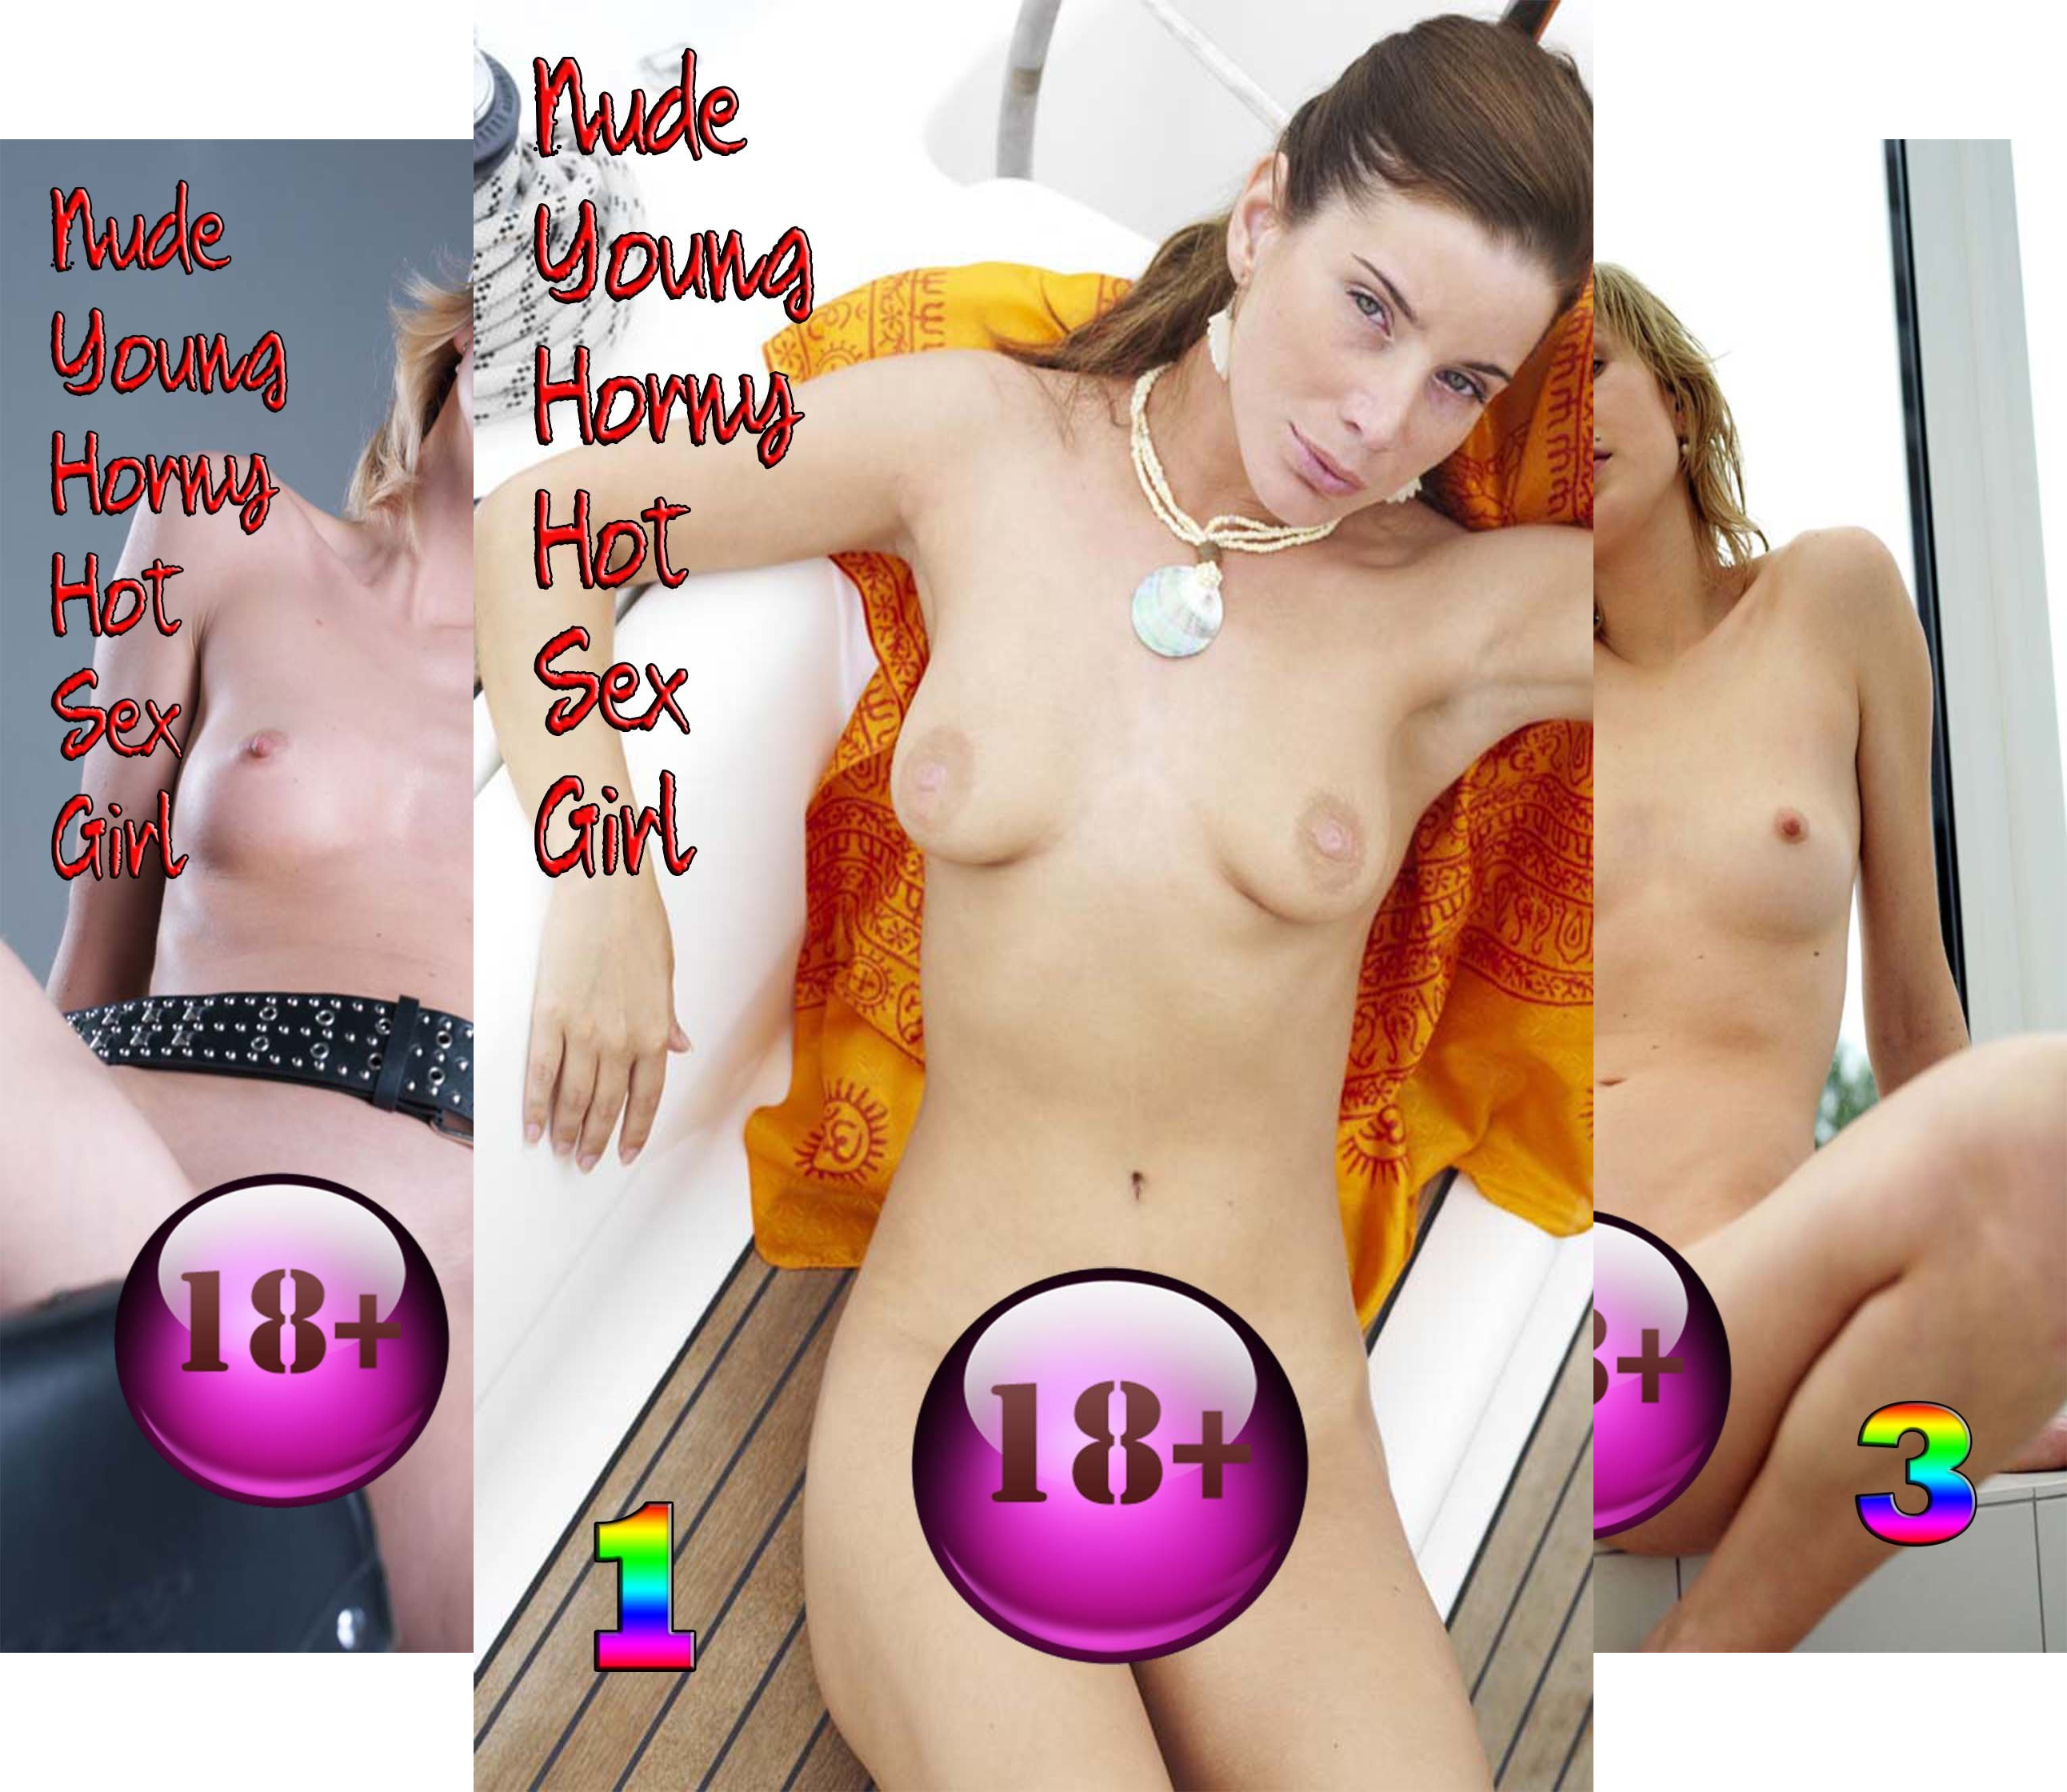 Nude Young Horny Hot Sex Girl (10 Book Series)